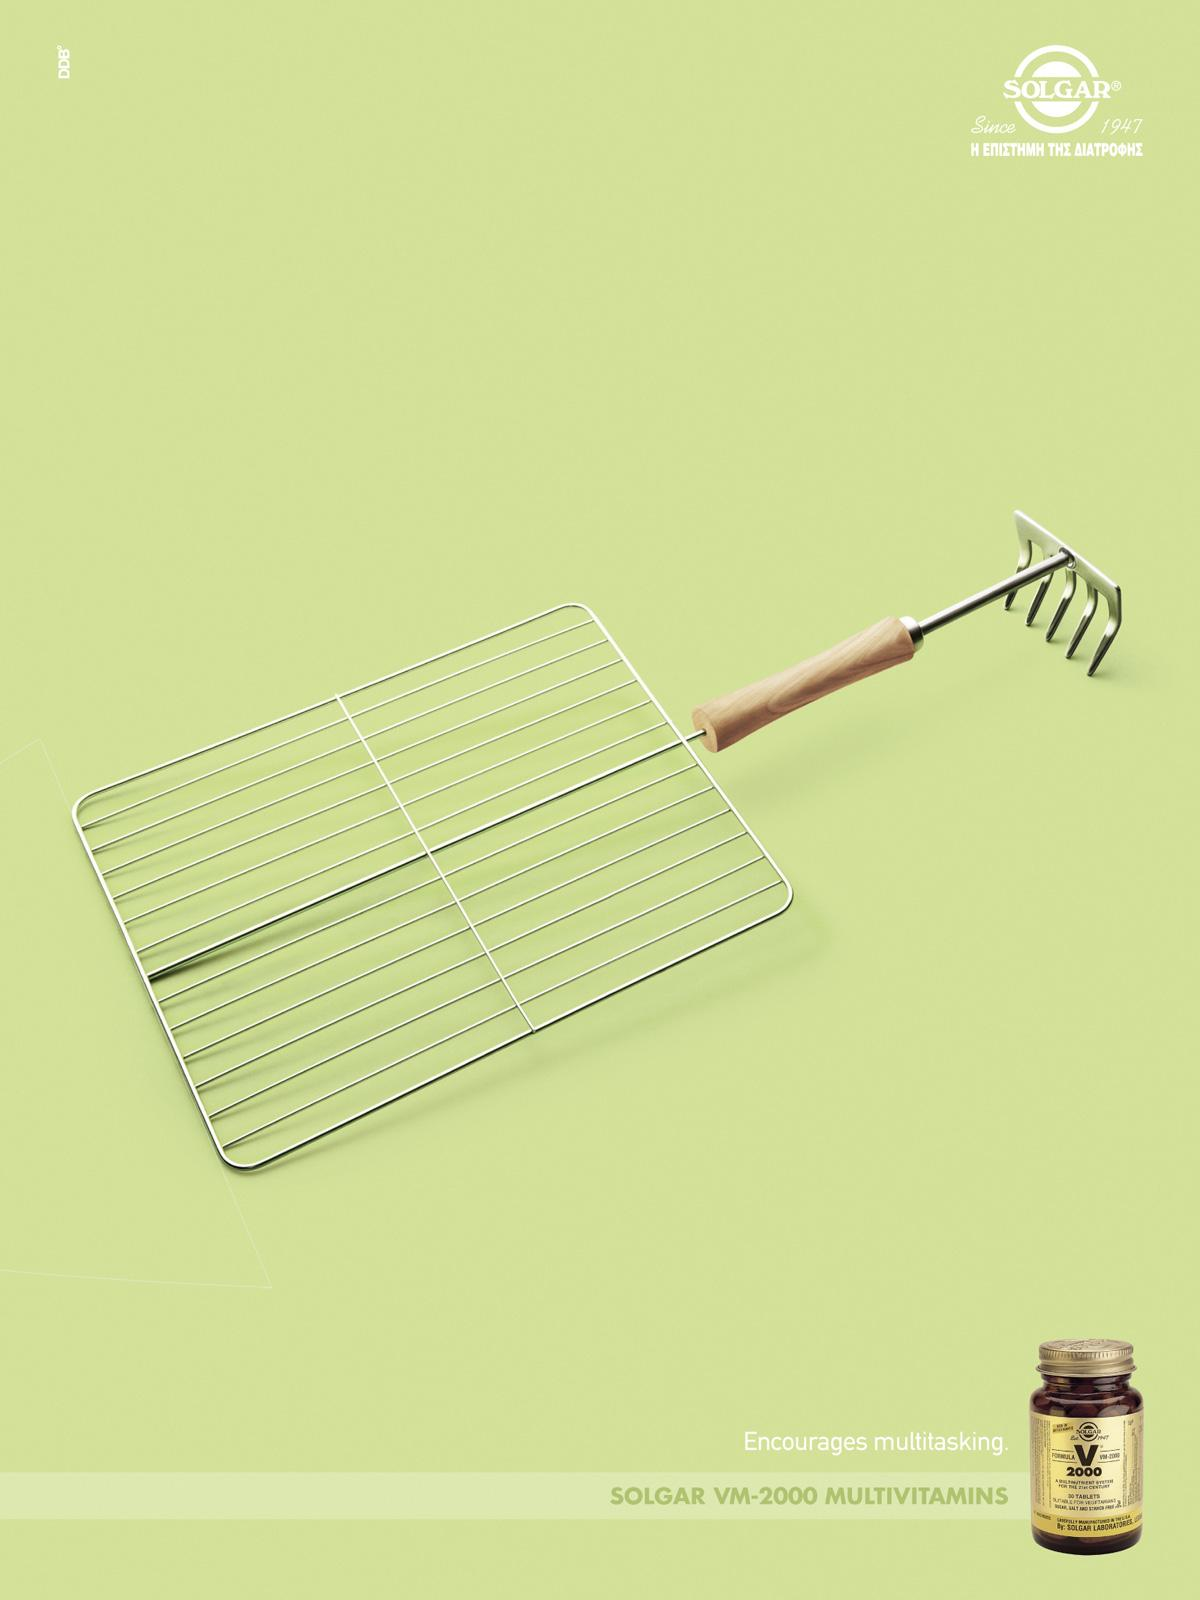 Solgar Print Ad -  Encourages multitasking, 1